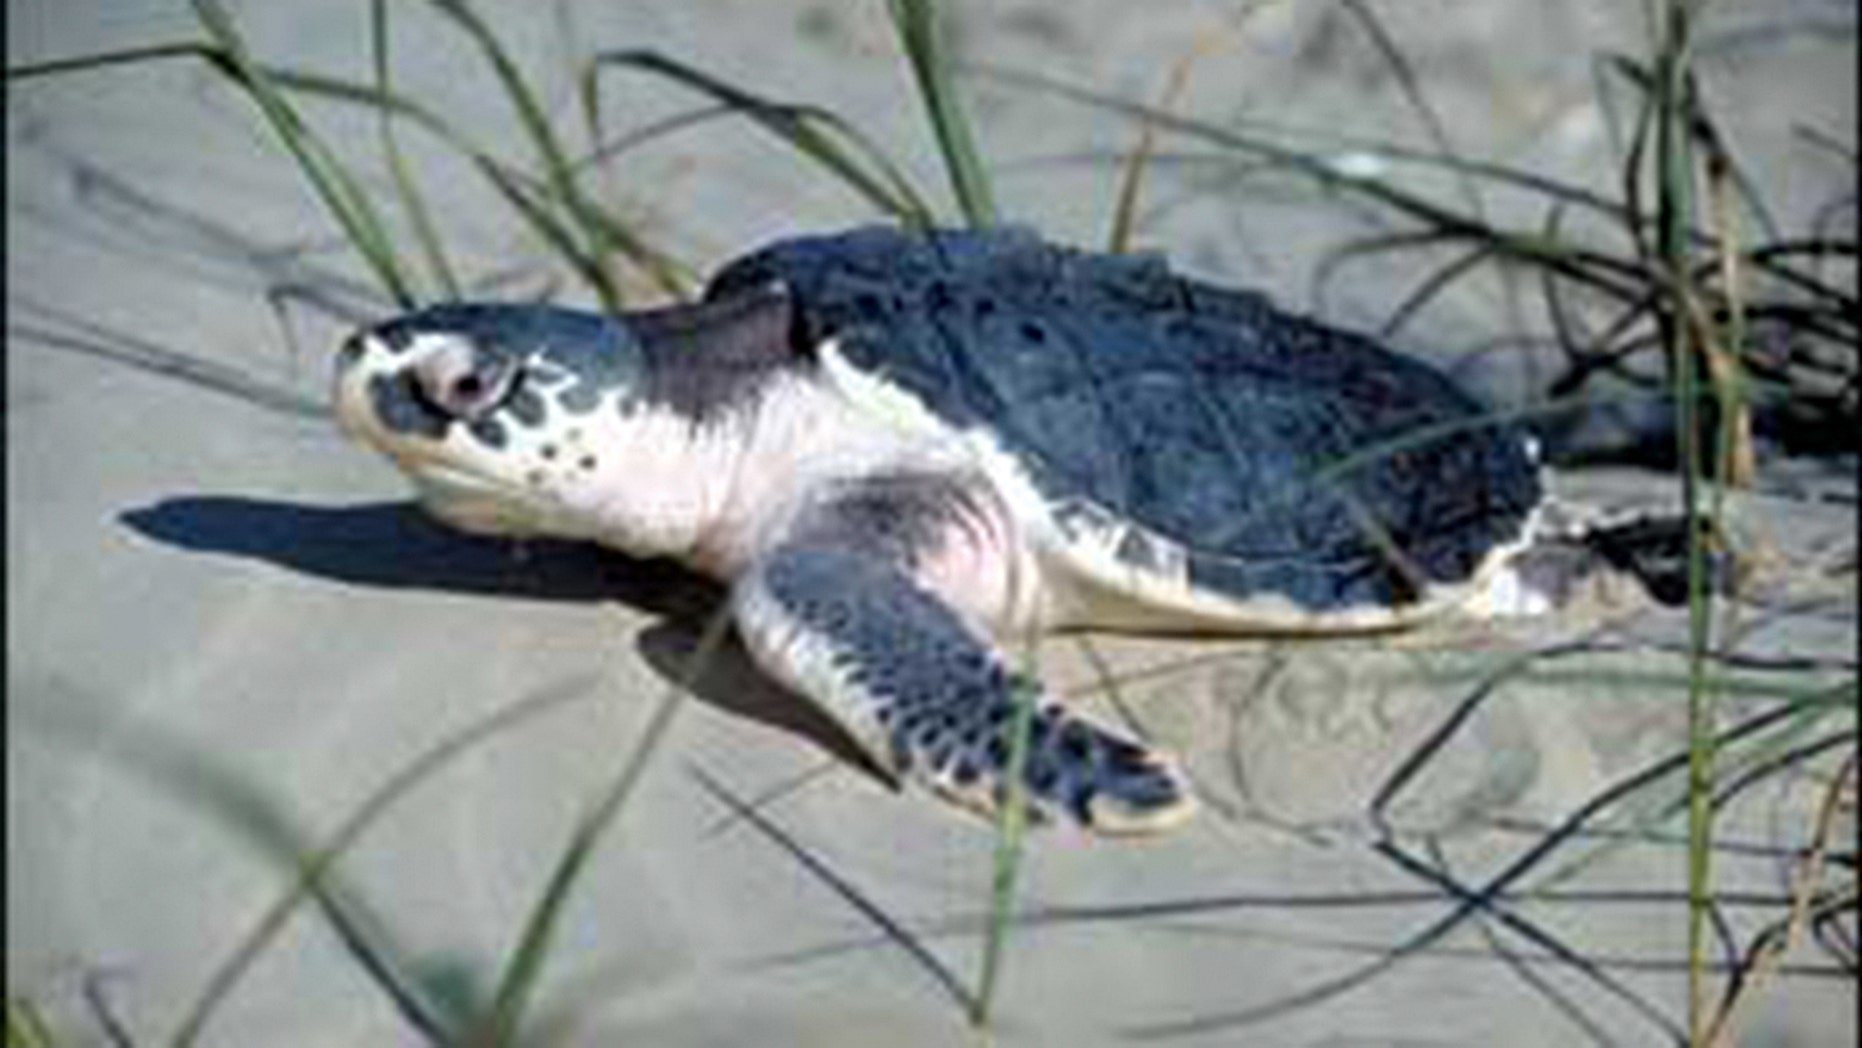 The Kemp's Ridley sea turtle is the most endangered of all sea turtles, according to the World Wildlife Fund.